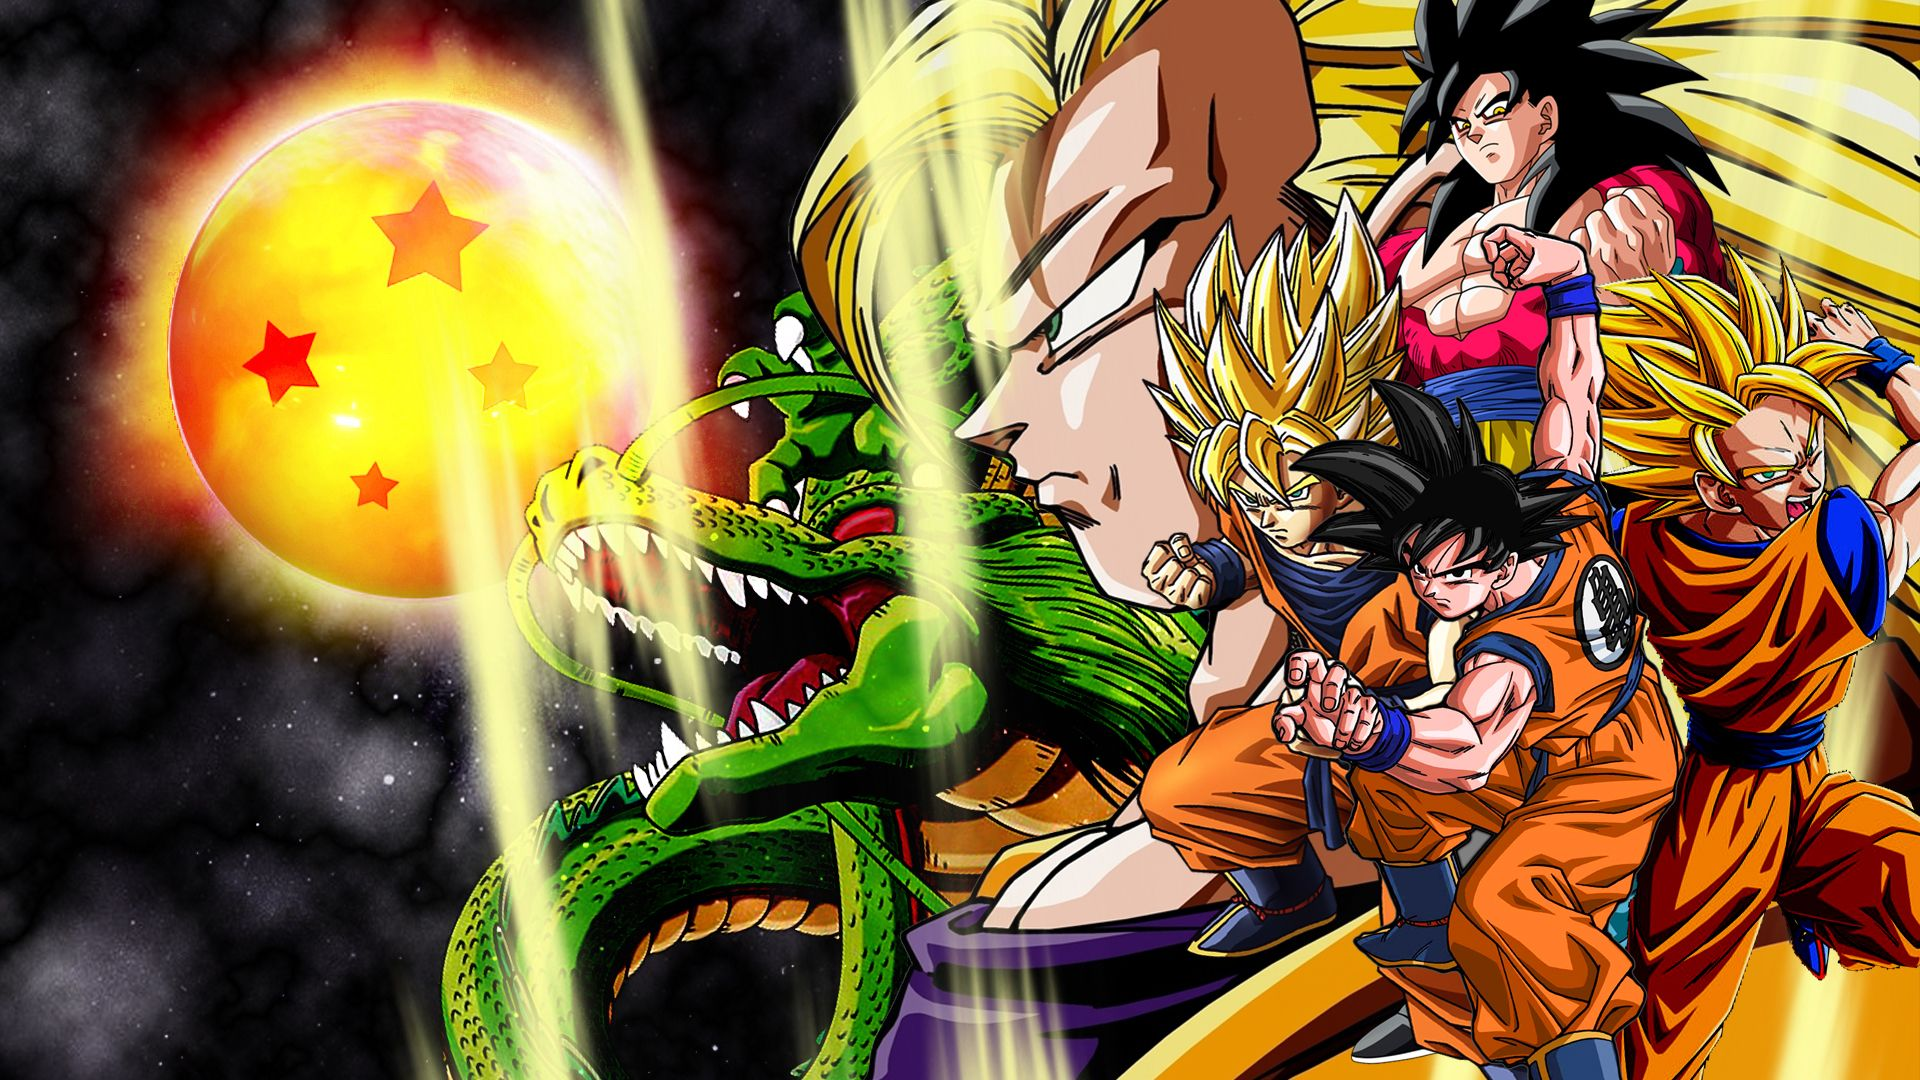 dragon ball z wallpaper http://anime.saqibsomal/2015/12/30/manga